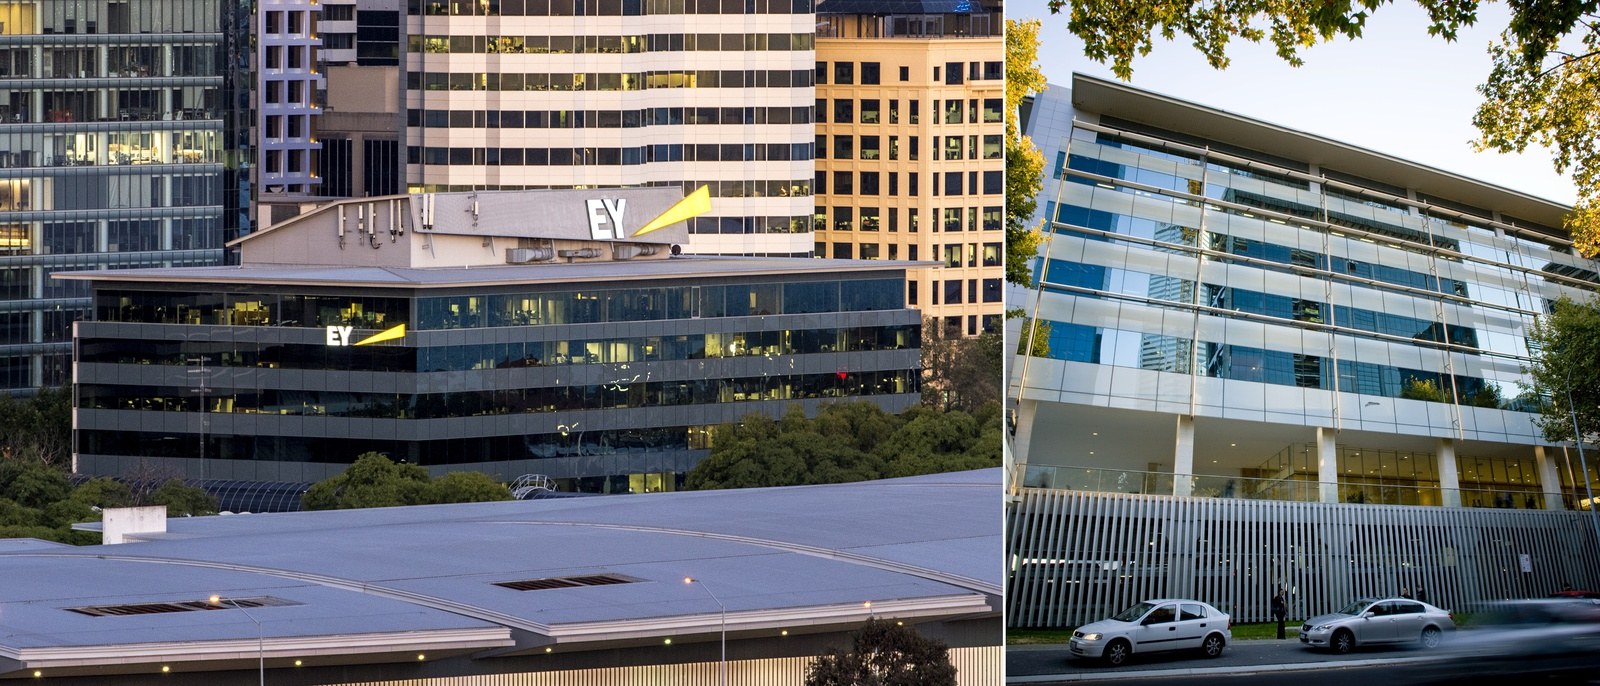 Ernst & Young by Leopard Controls